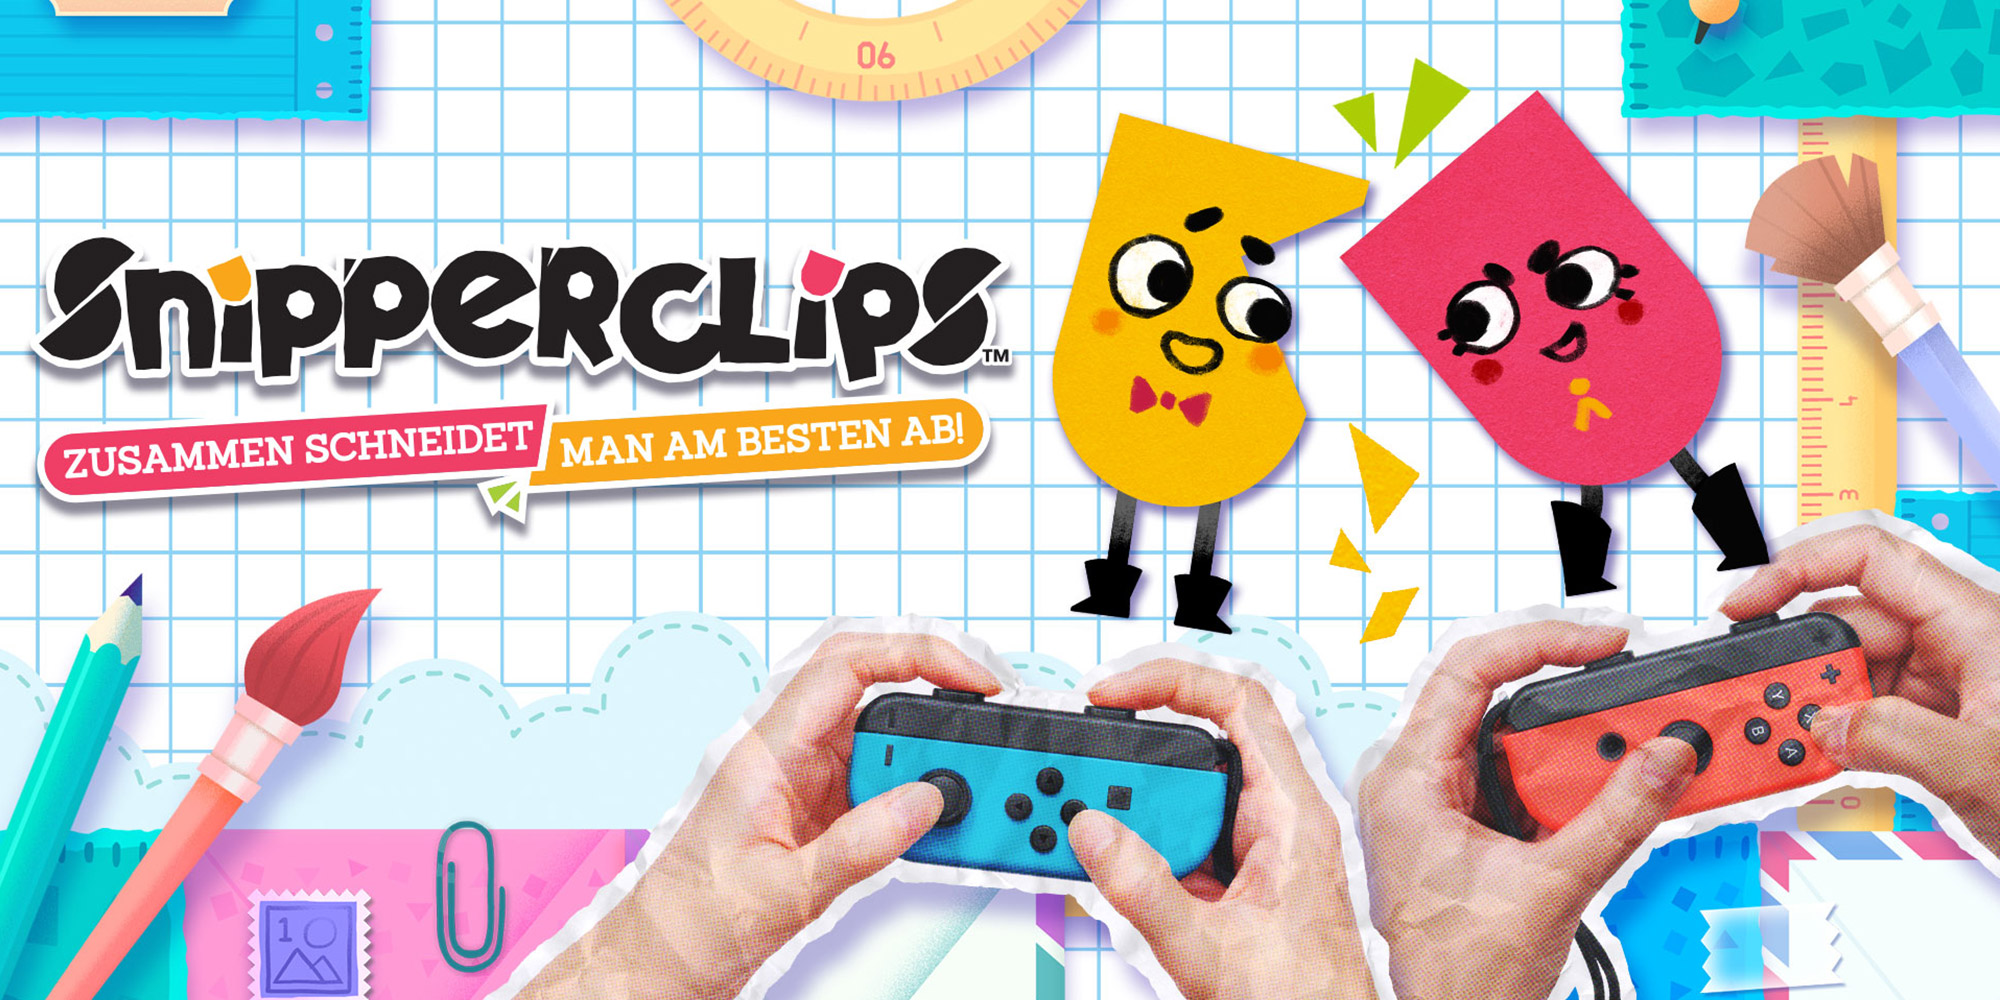 H2x1_NSwitchDS_Snipperclips_deDE.jpg